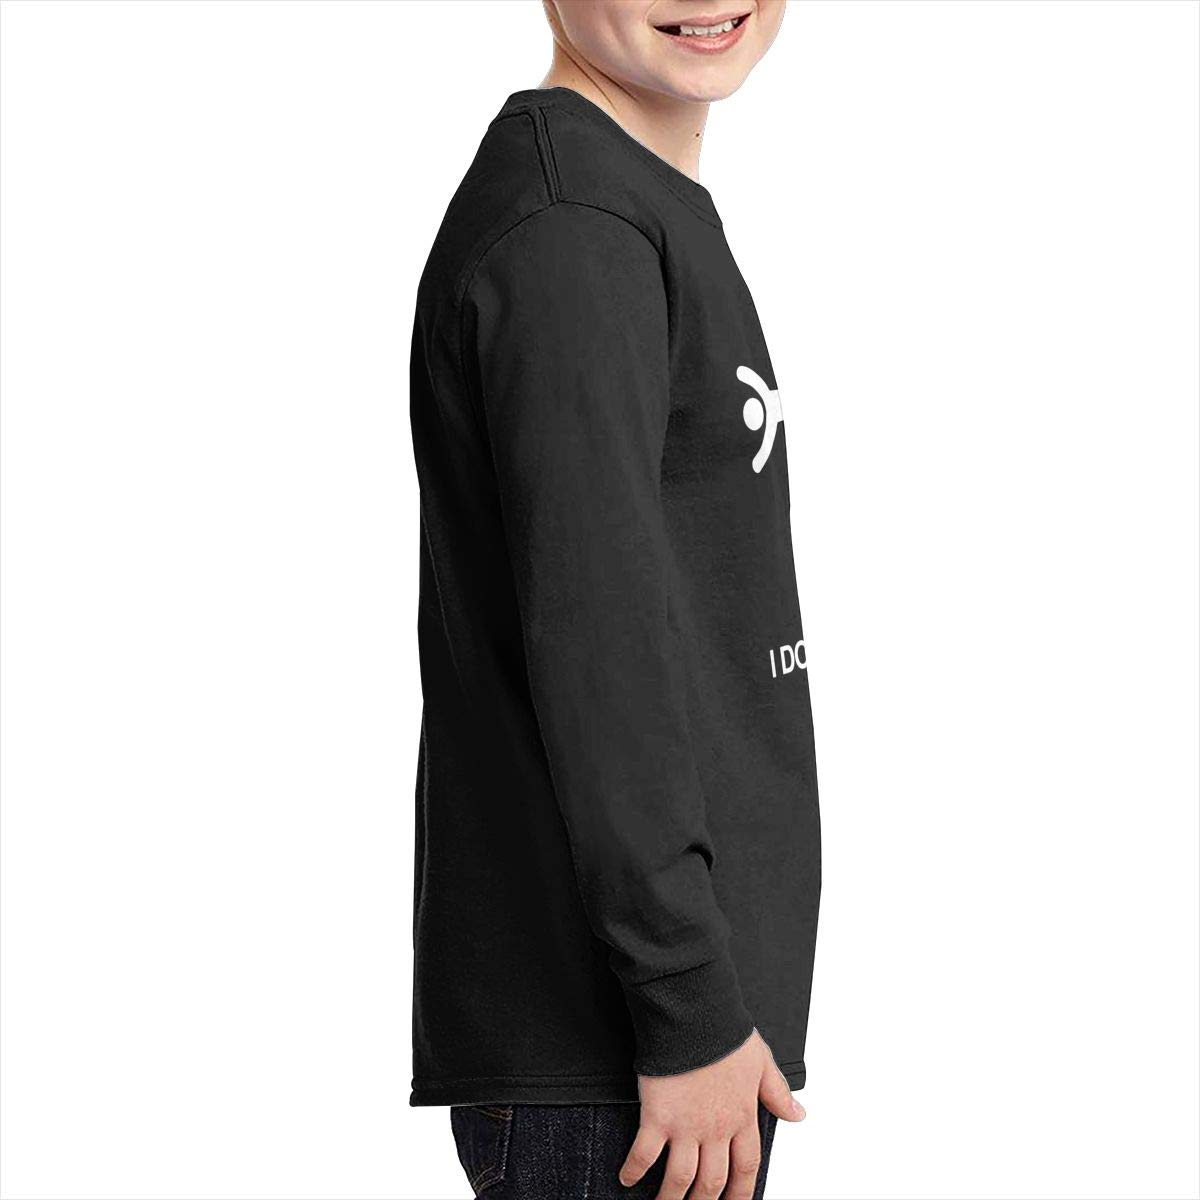 ZHAN-pcc I Do My Own Stunts Boys Girls Youth Junior Classic Fashion Casual Long Sleeve Crewneck Tees T-Shirt Black